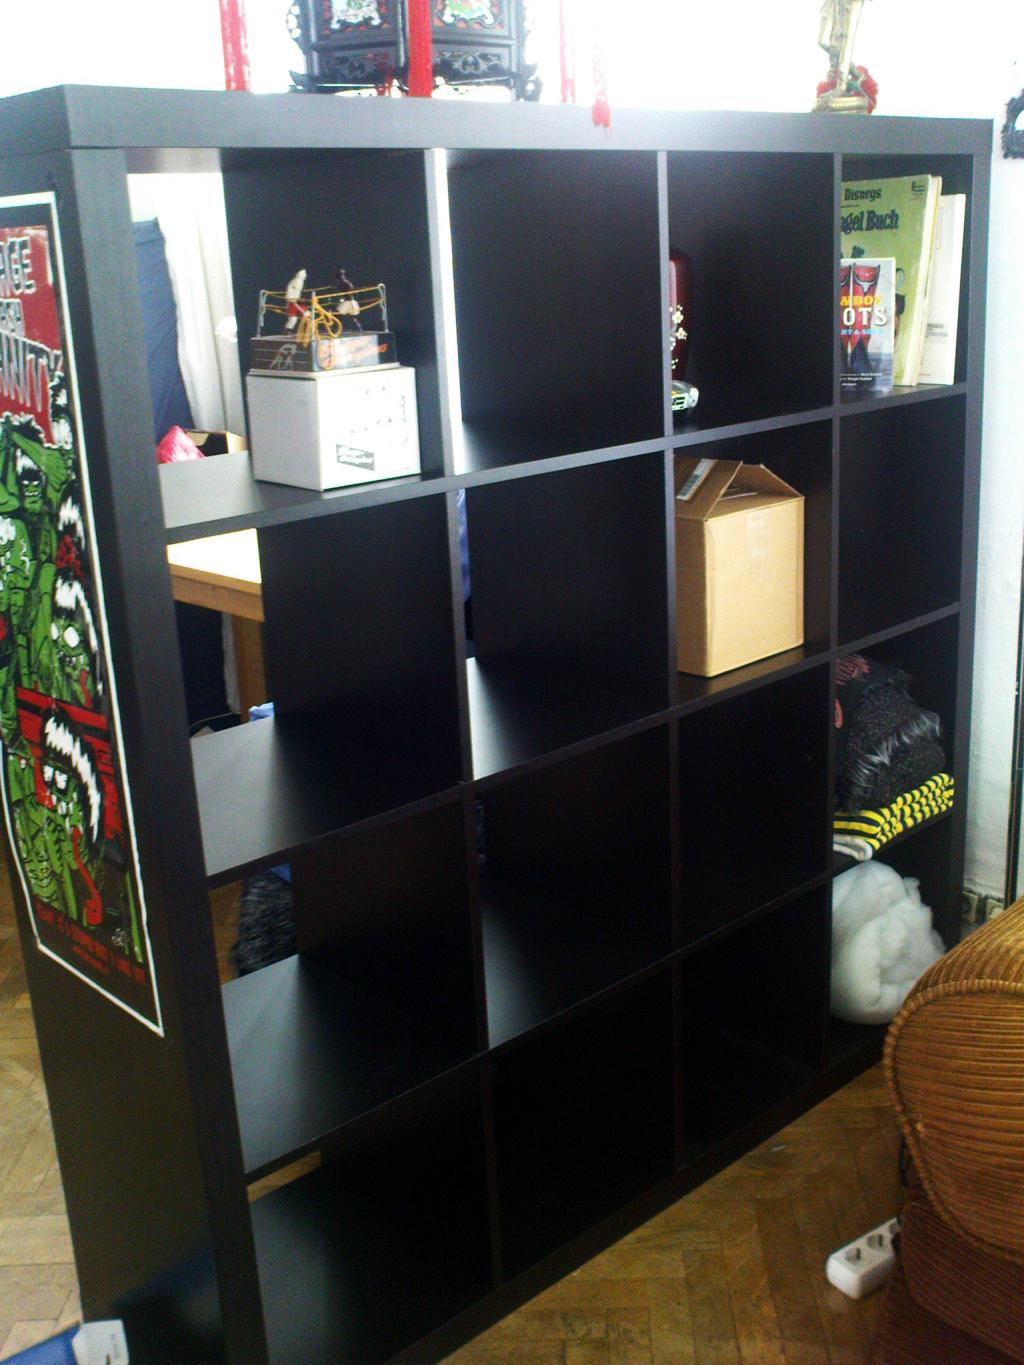 expedit regal ikea schwarz braun raumteiler